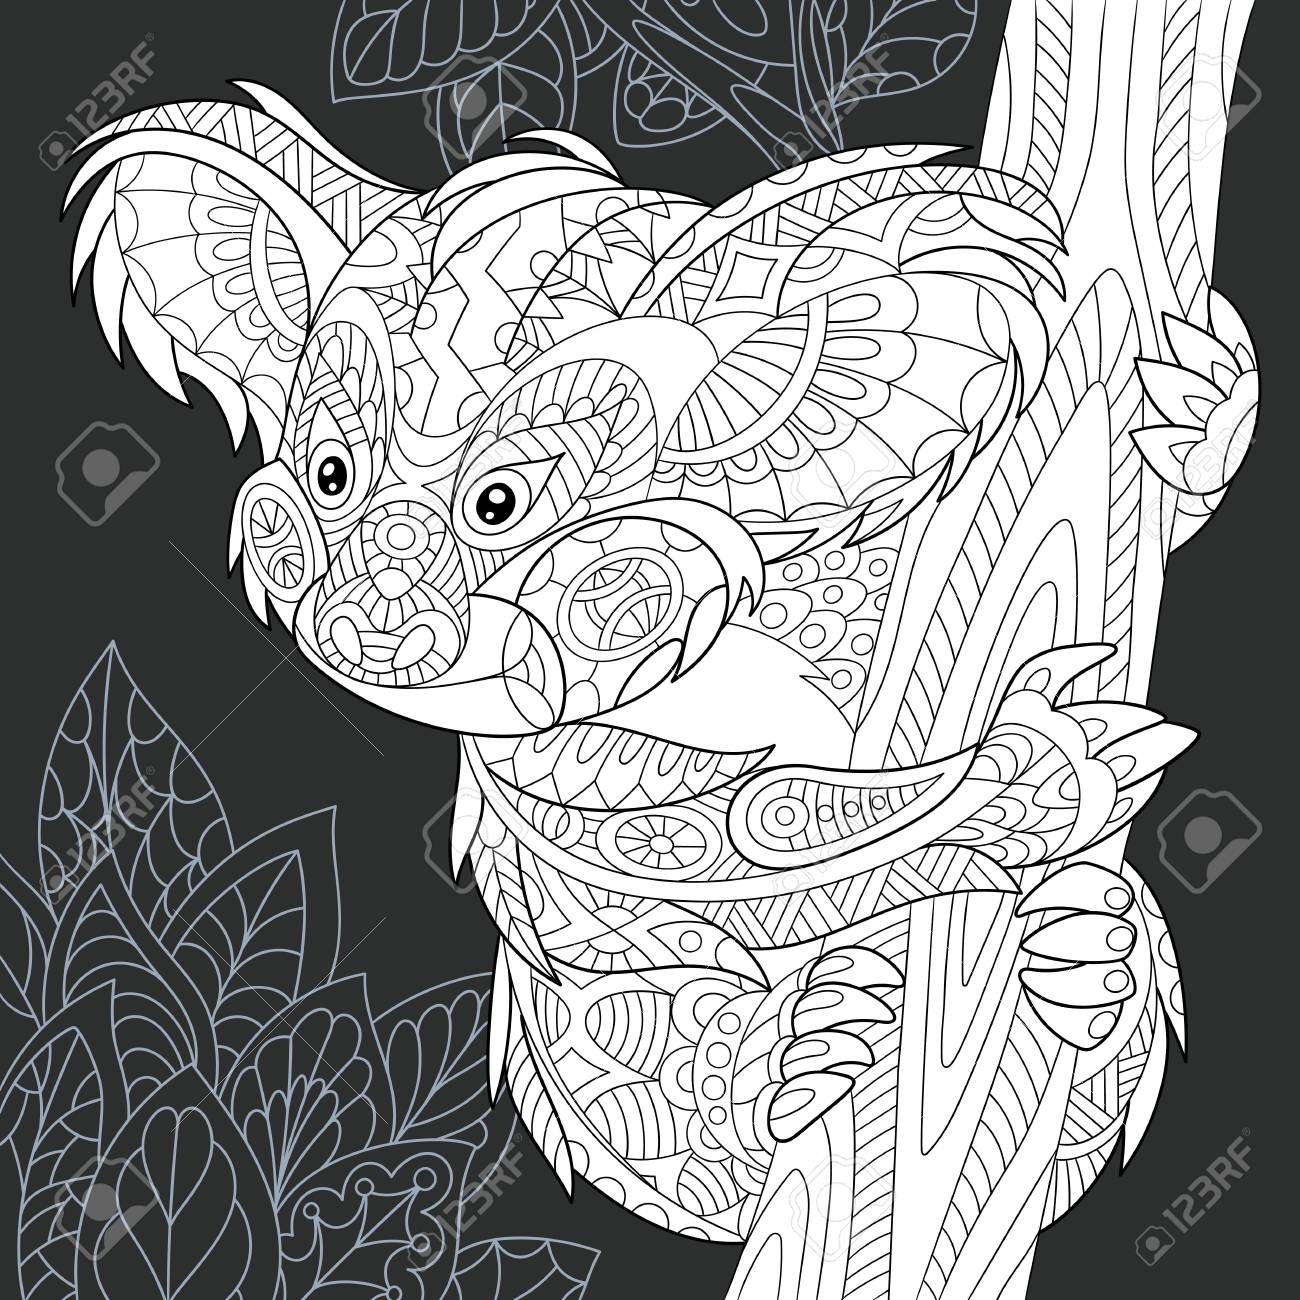 Koala bear drawn in line art style jungle background in black and white colors on